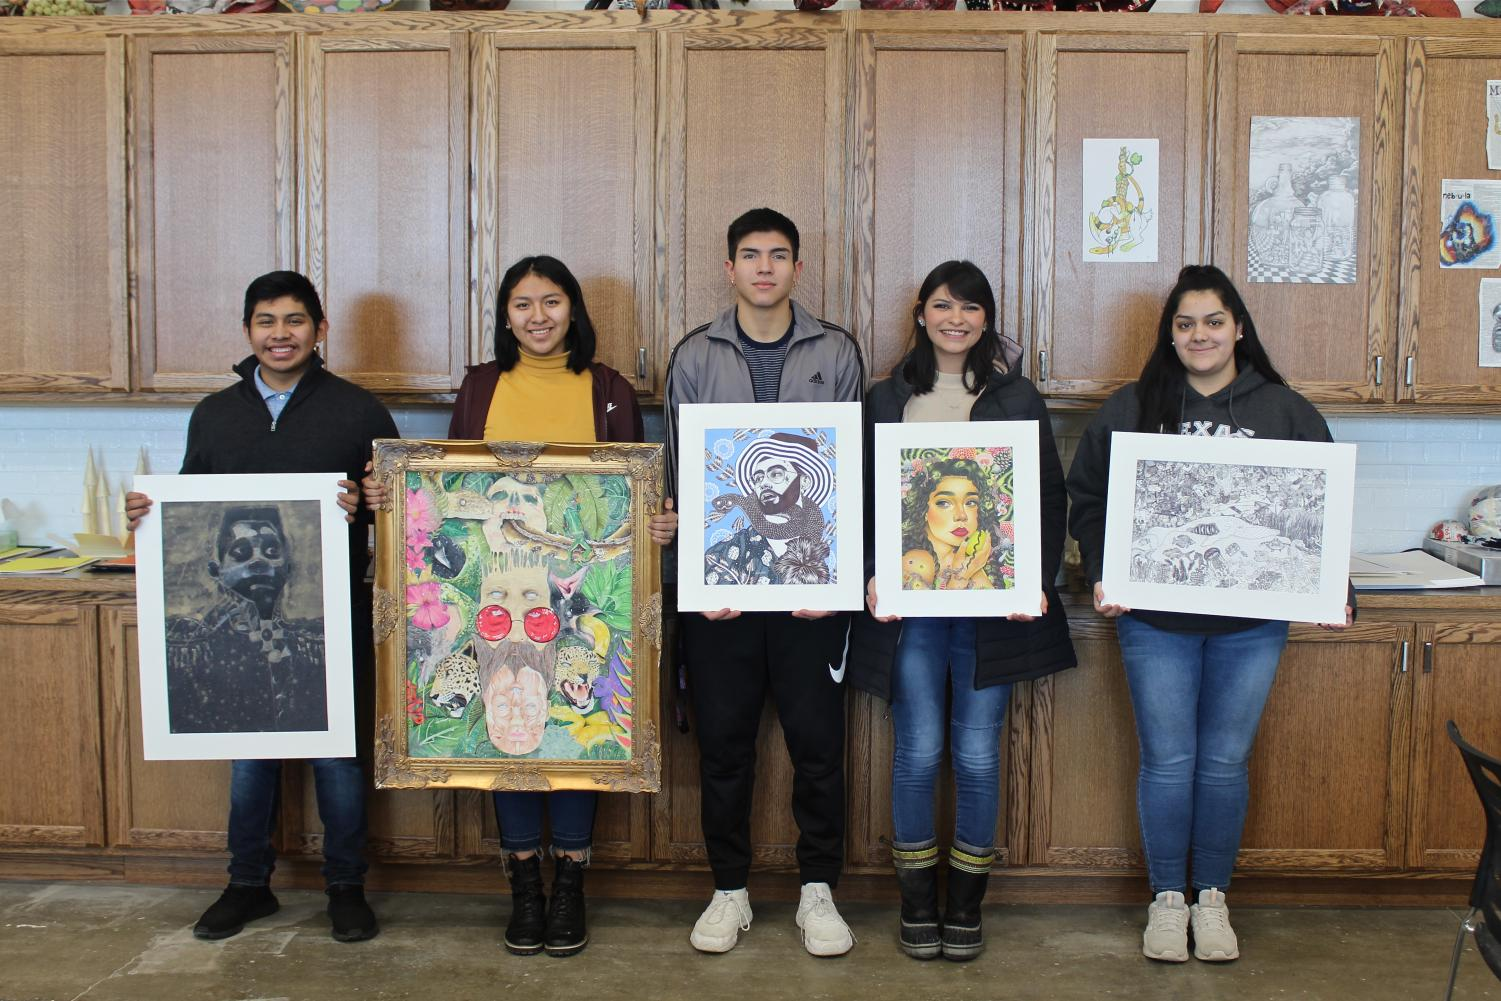 The SCHS art students with their artwork. (Not pictured are: Chloe Beltrand, Cassie Macholan, and Gabby Castro)